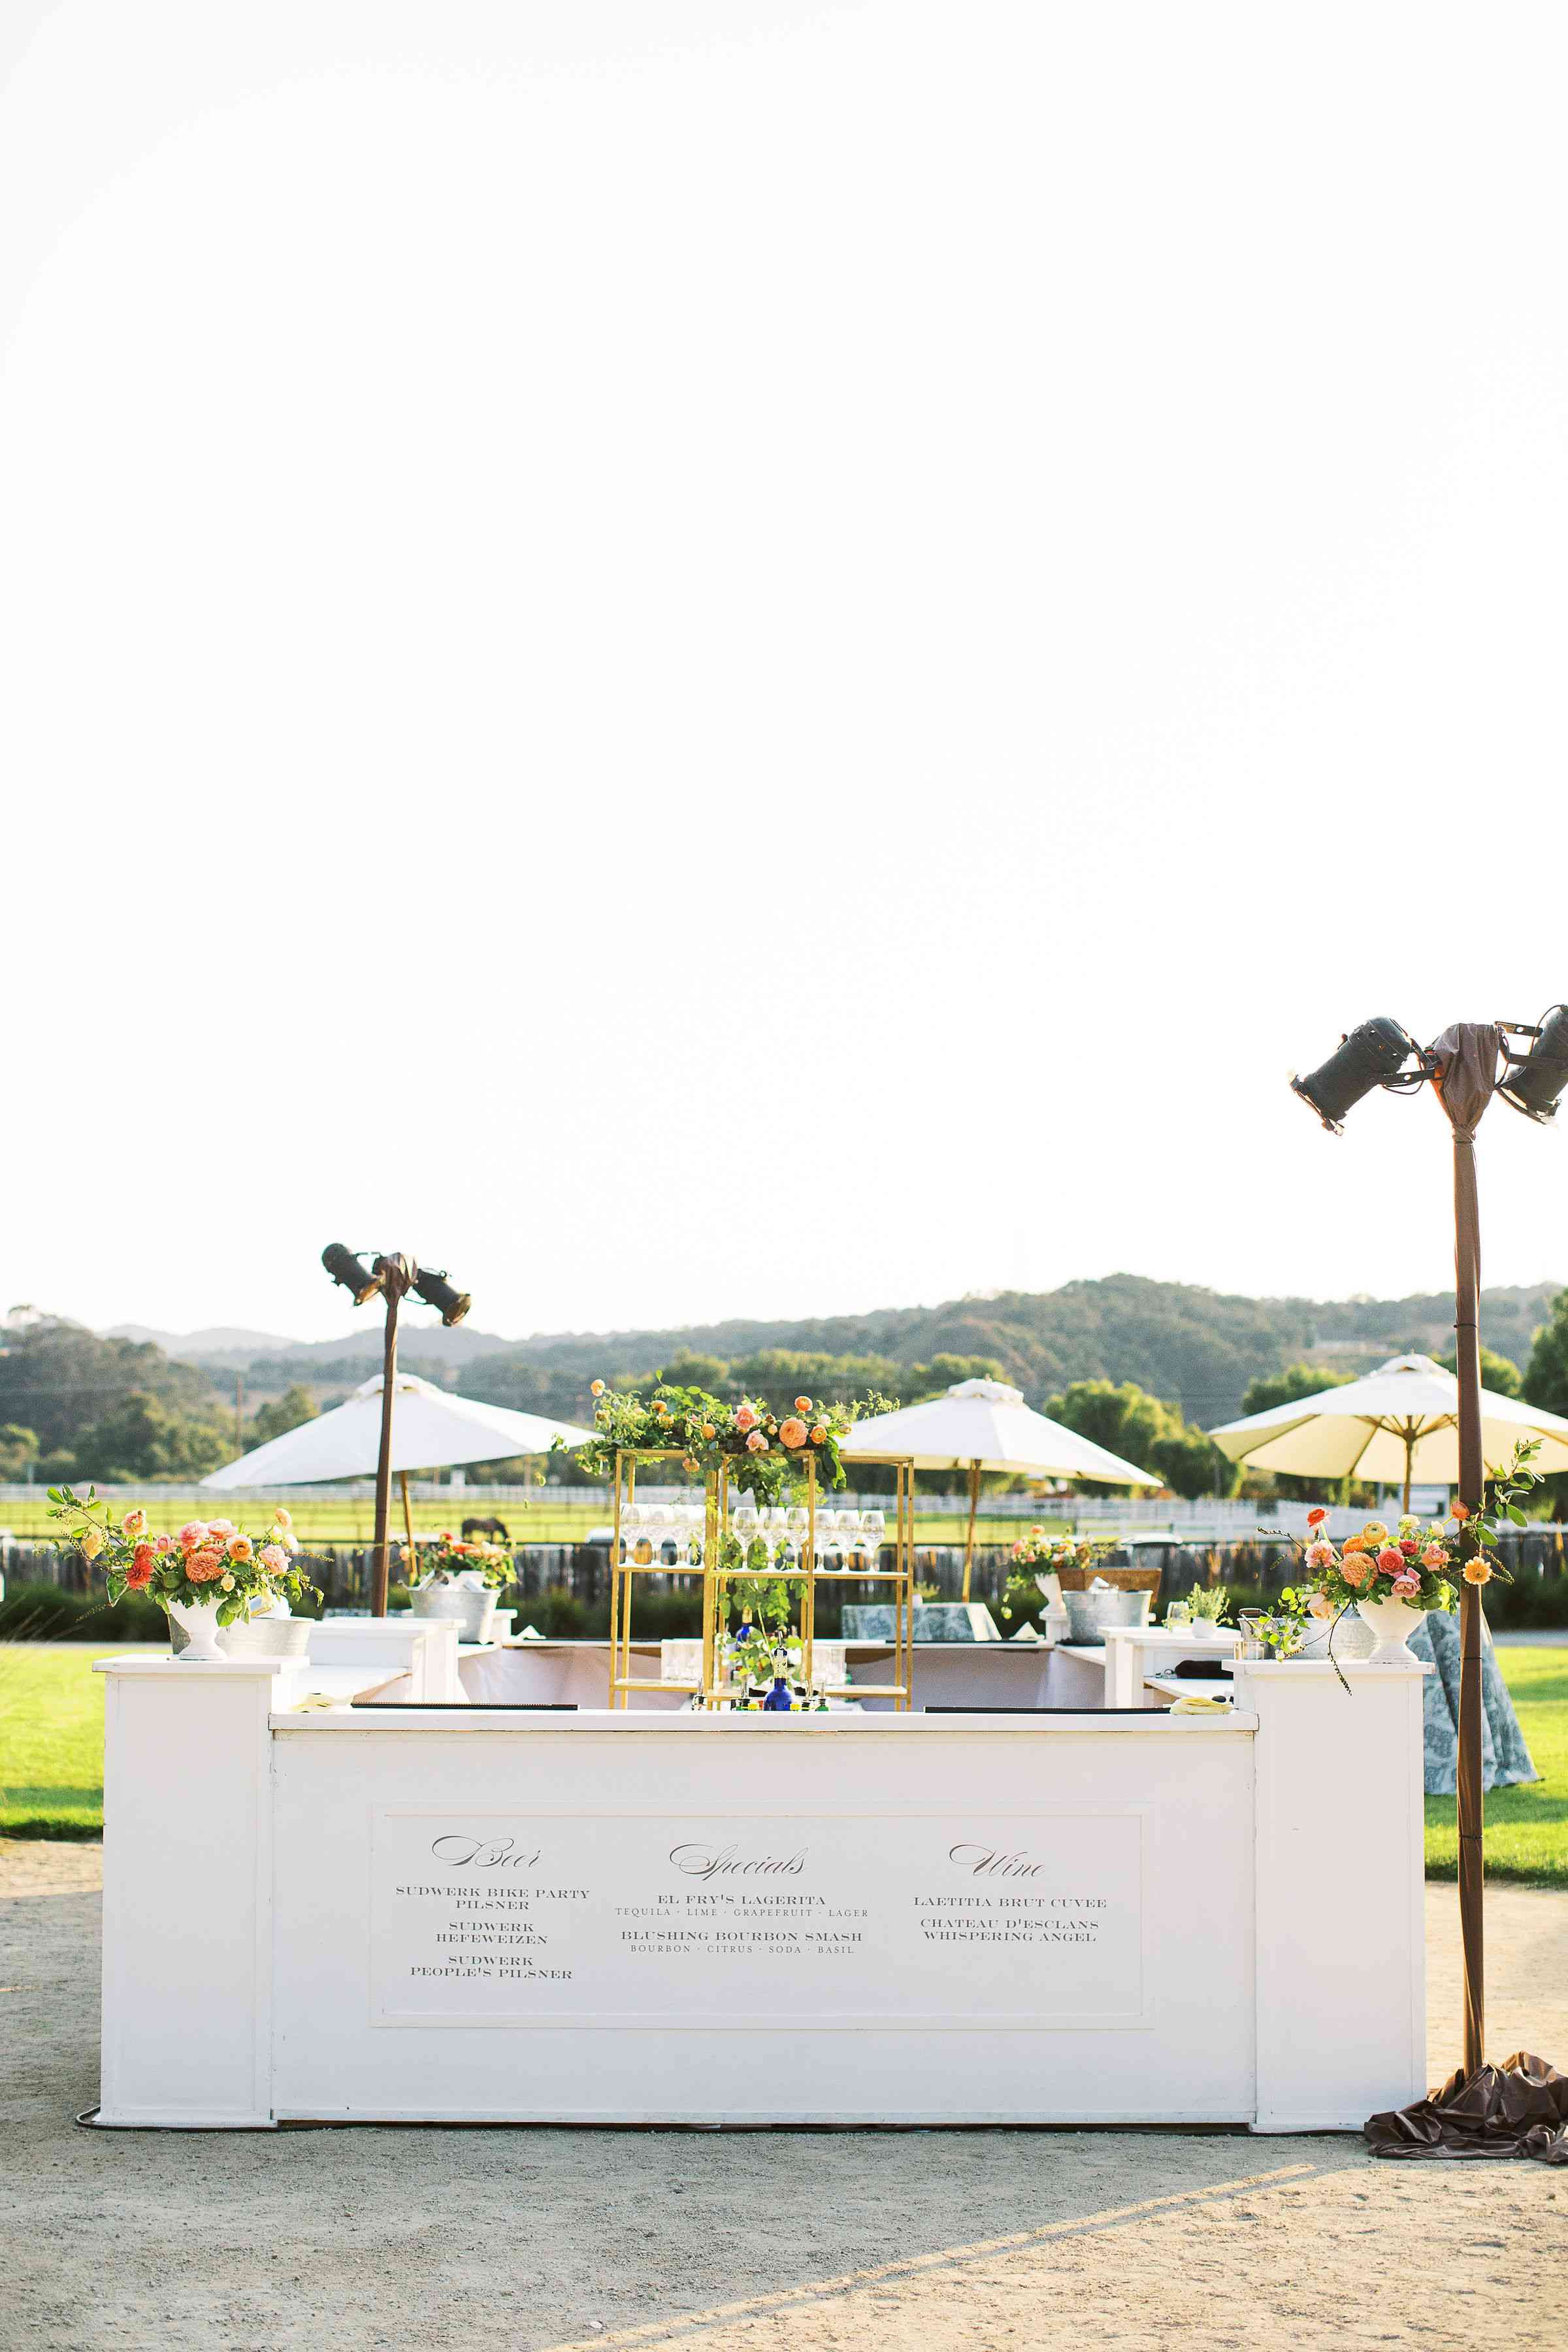 Double-sided outdoor bar at a wedding reception